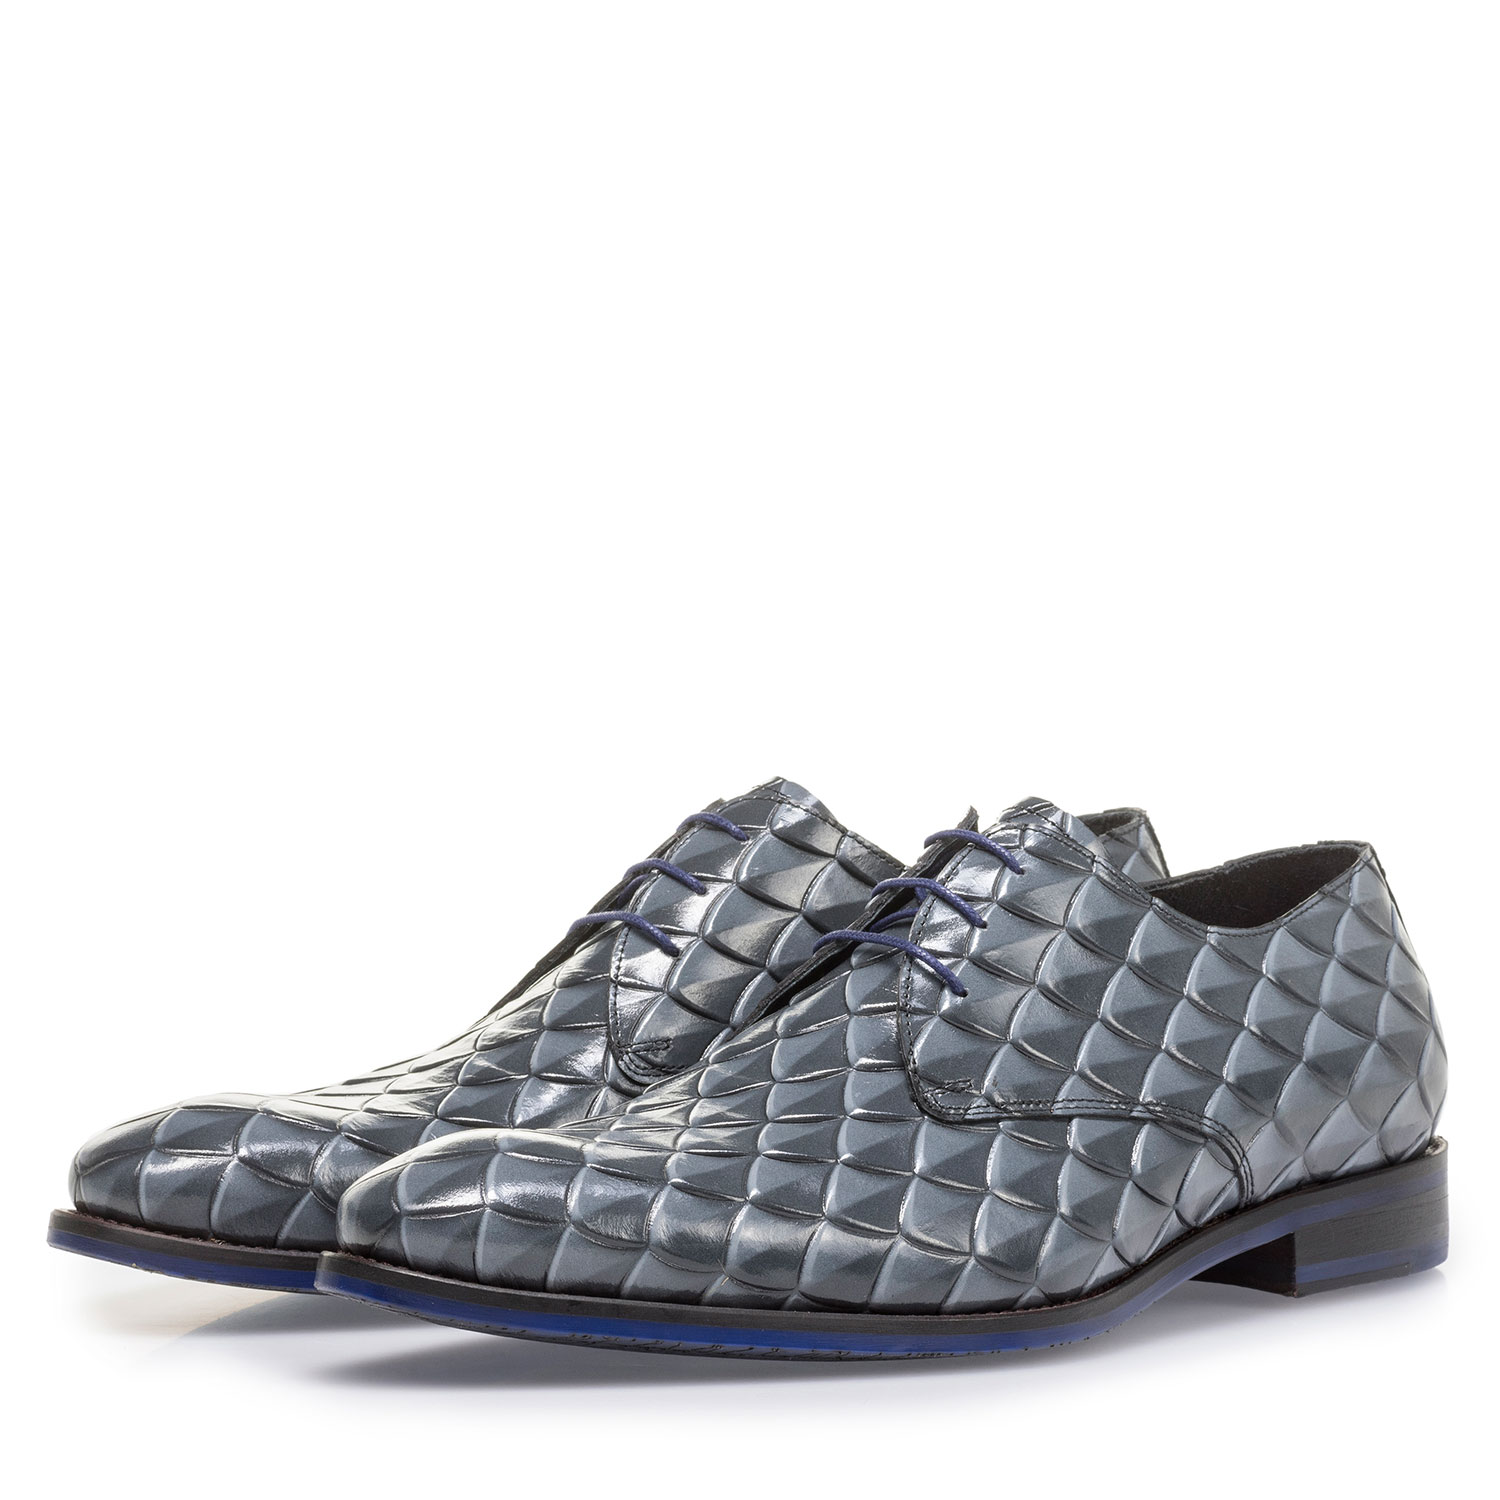 18167/04 - Premium grey lace shoe with print